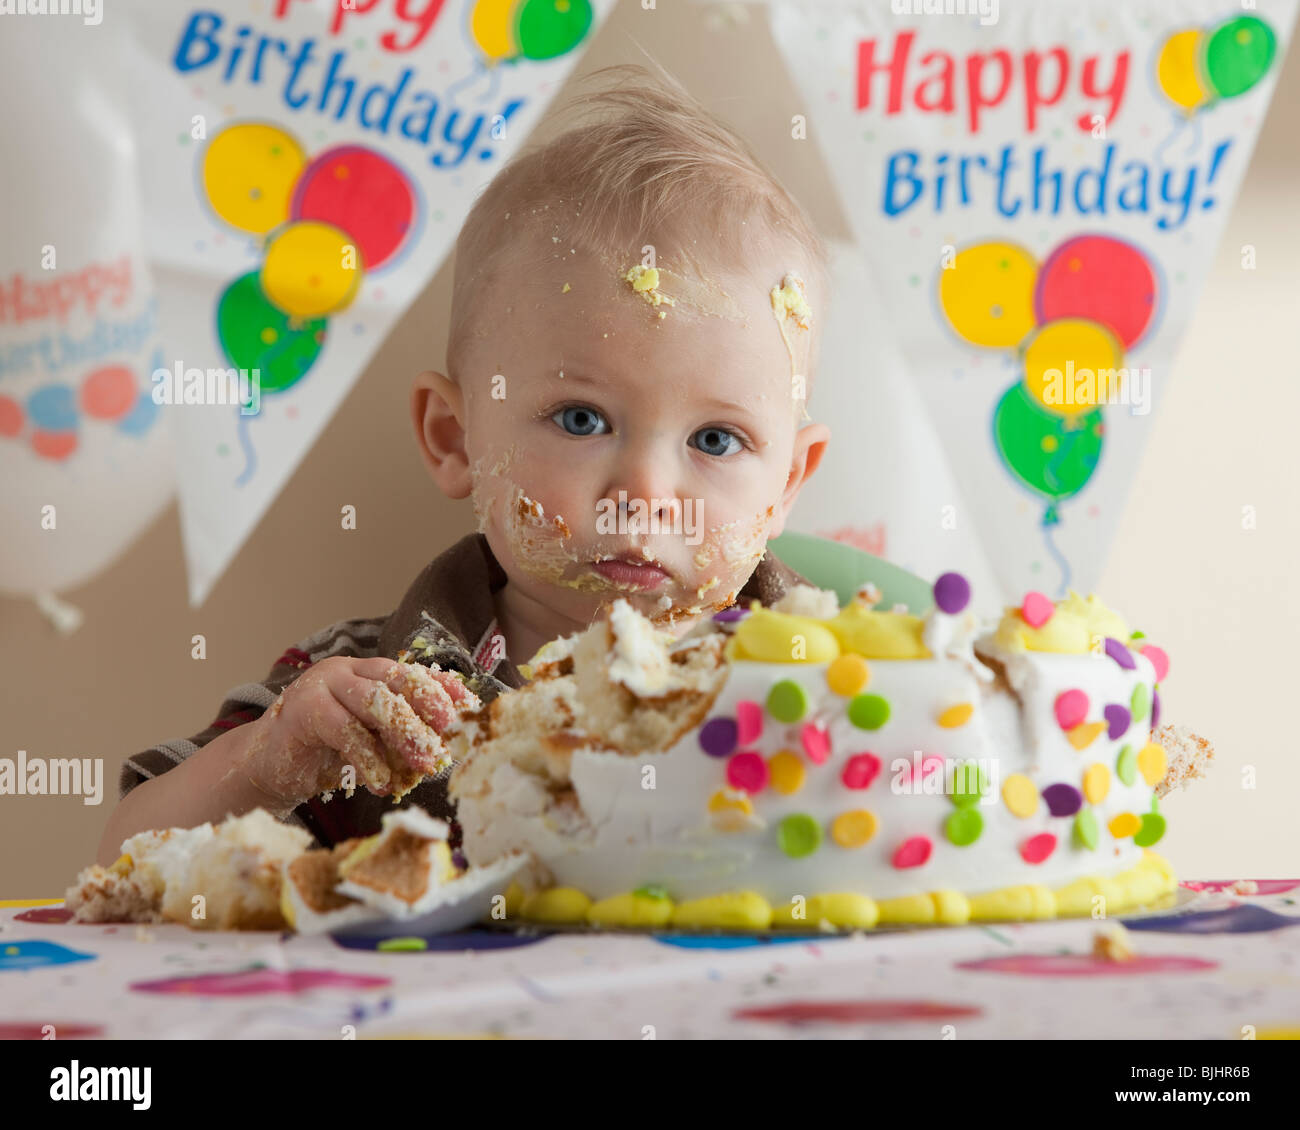 Groovy Baby Eating Birthday Cake Stock Photo 28665571 Alamy Funny Birthday Cards Online Inifofree Goldxyz